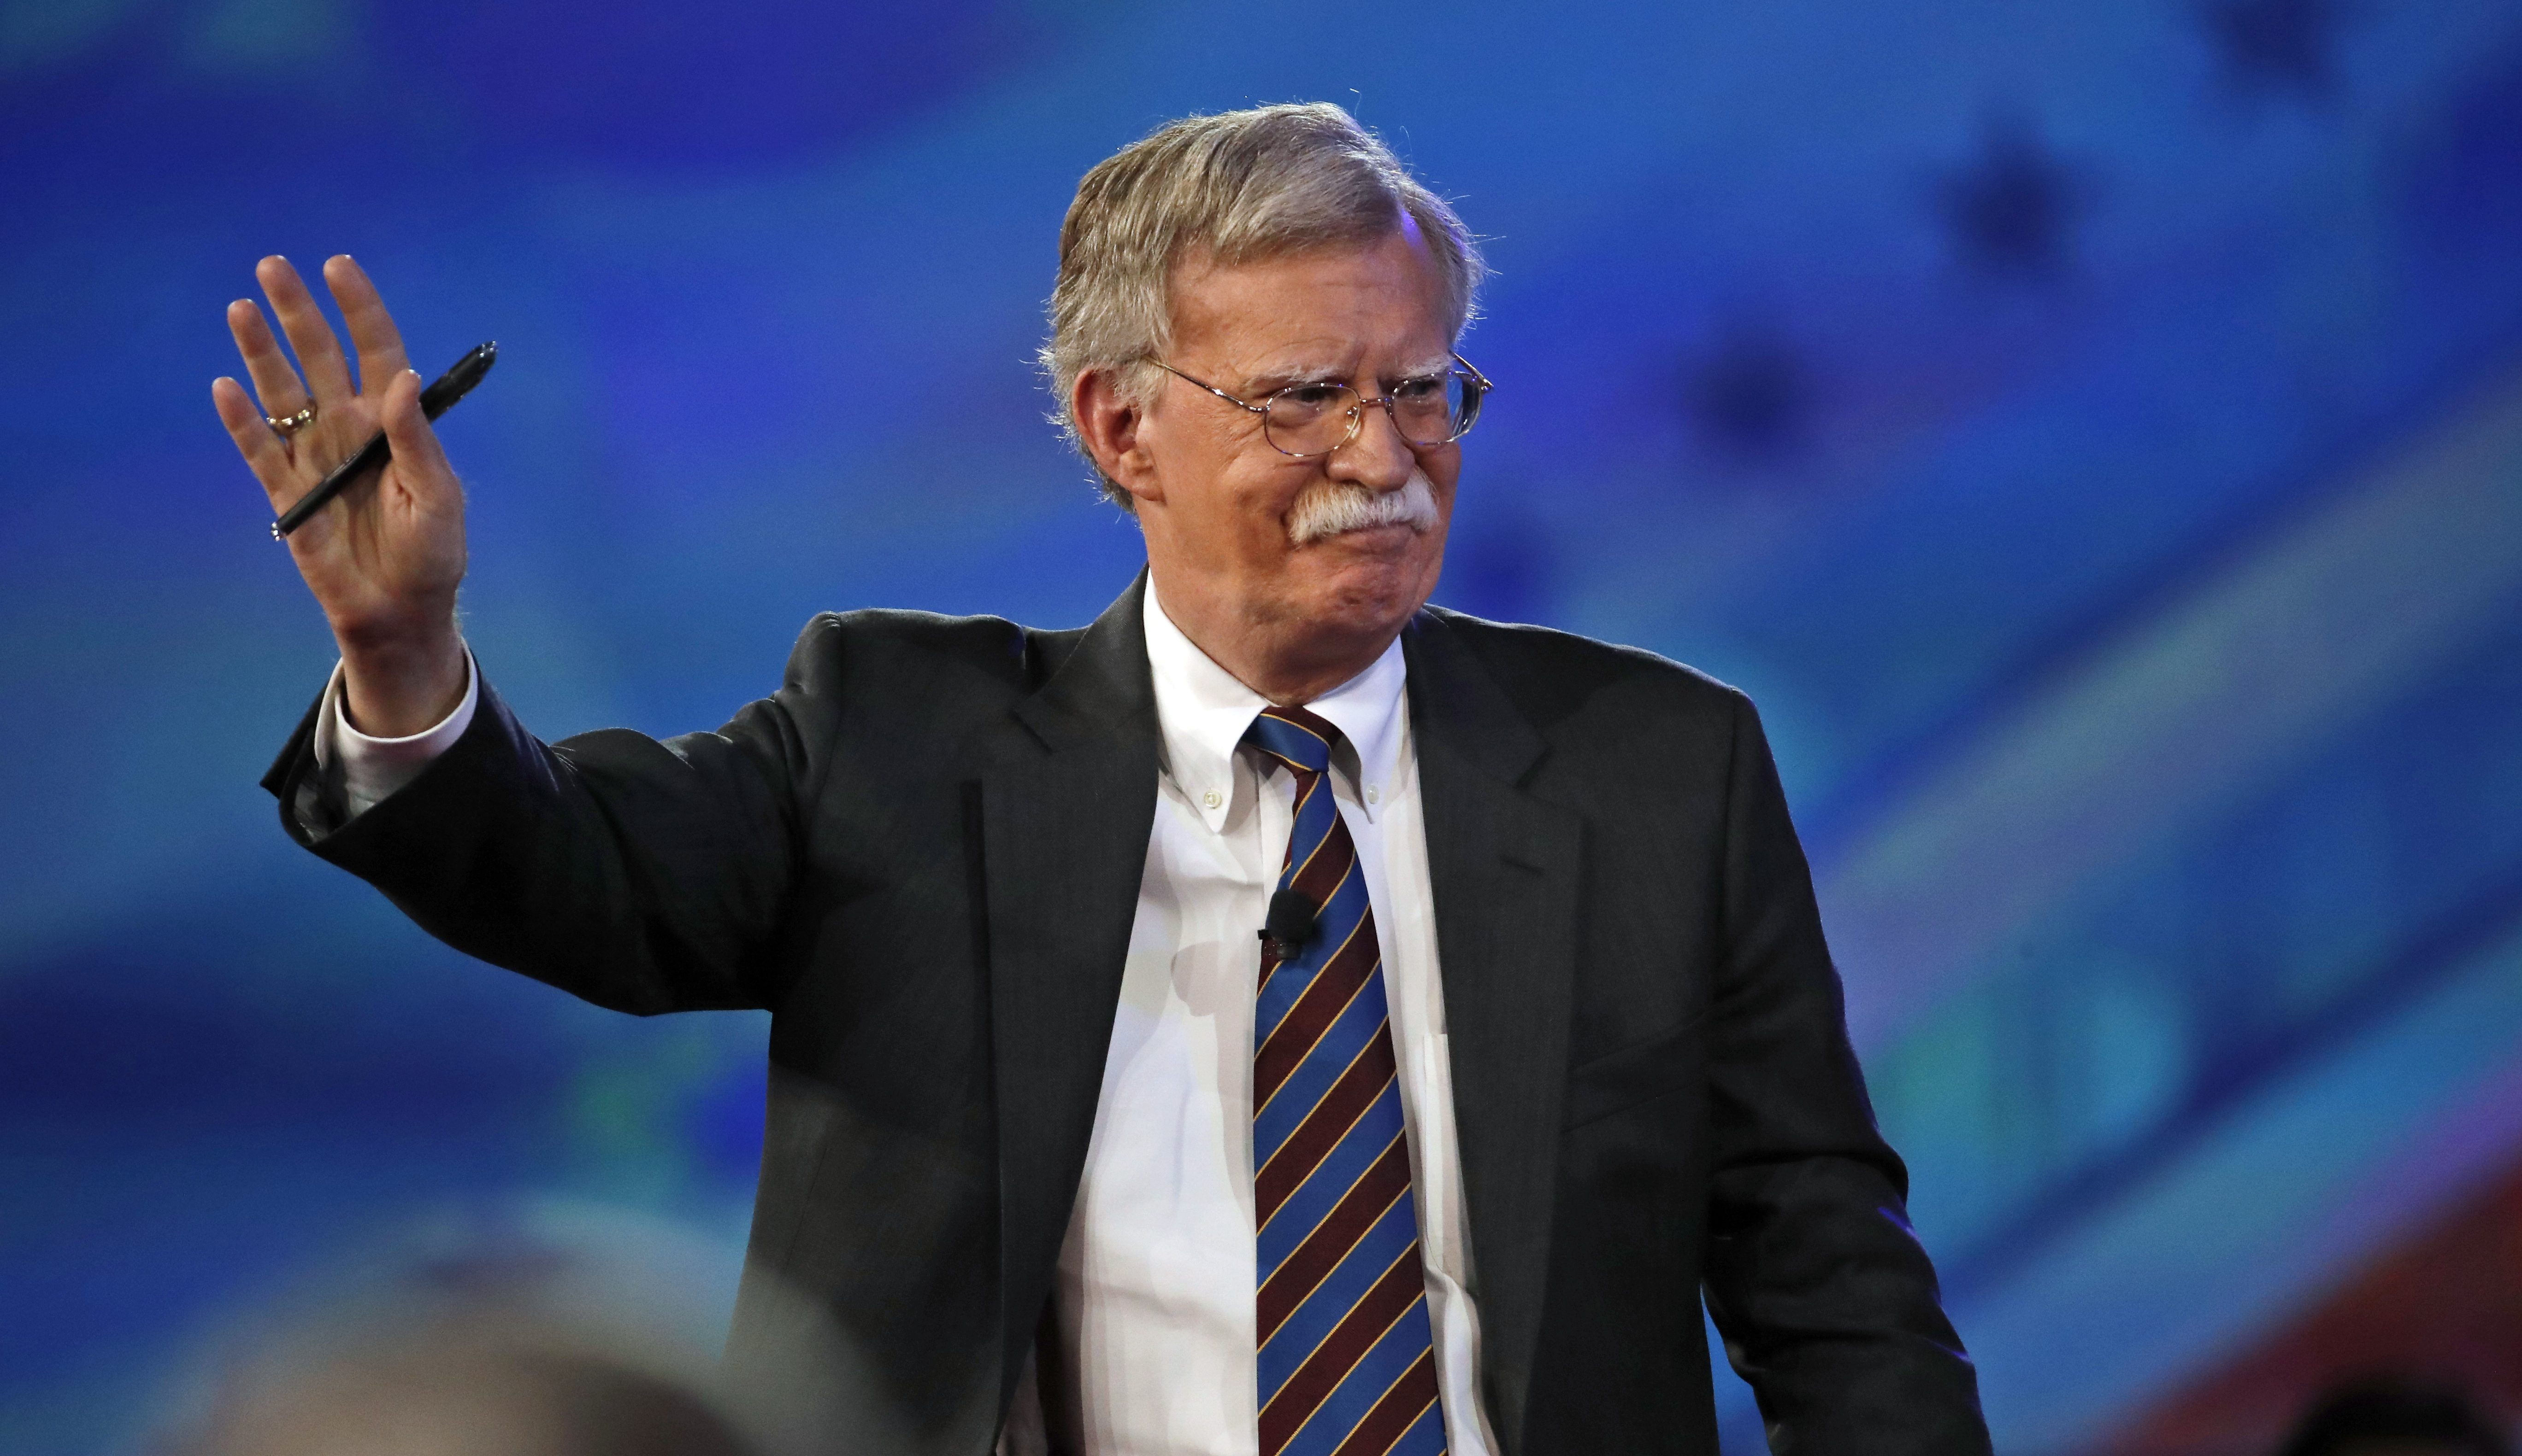 Former U.S. Ambassador to the UN John Bolton arrives to speak at the Conservative Political Action Conference (CPAC), Friday, Feb. 24, 2017, in Oxon Hill, Md.